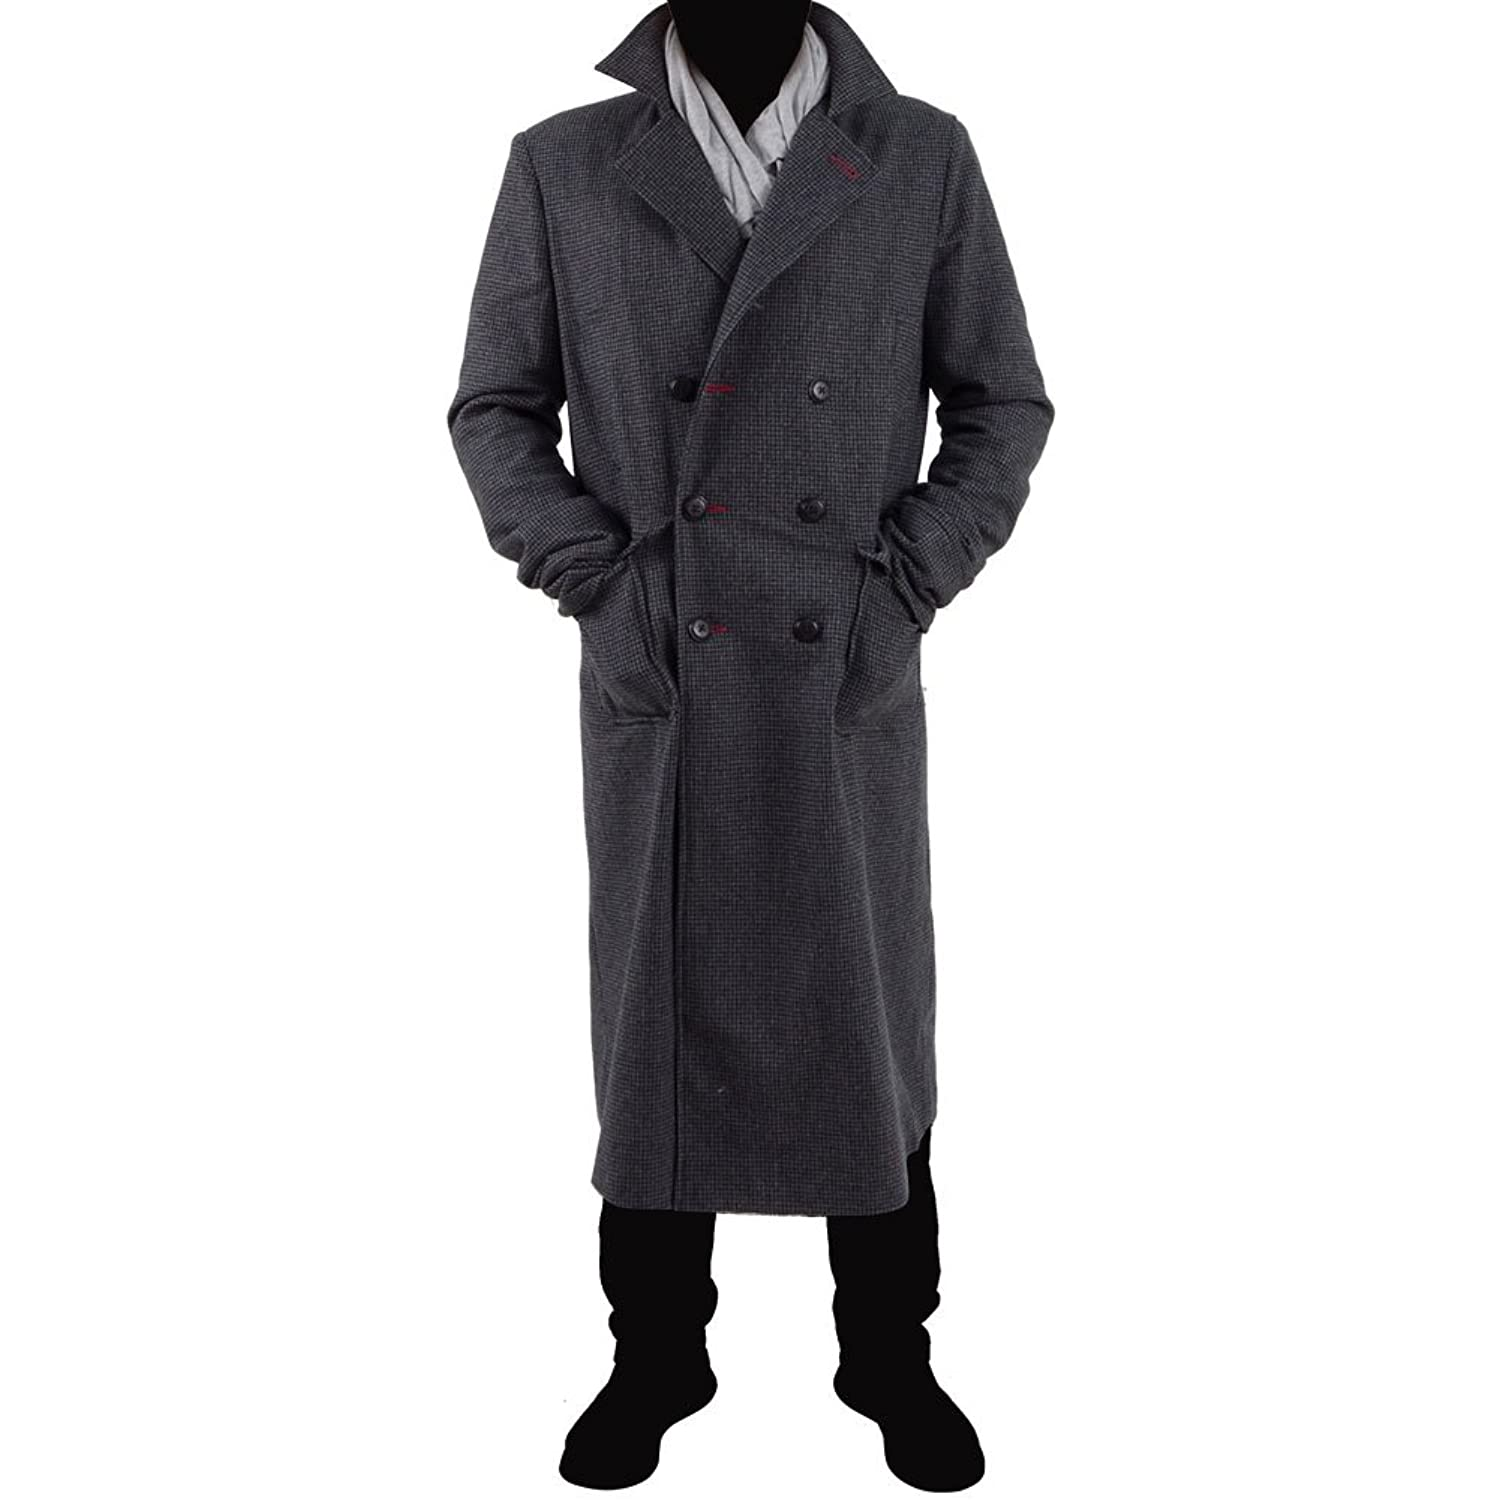 1920s Mens Coats & Jackets History Mens Plaids And Tweeds Long Trench Coat Halloween Cosplay Costume Overcoat $100.00 AT vintagedancer.com